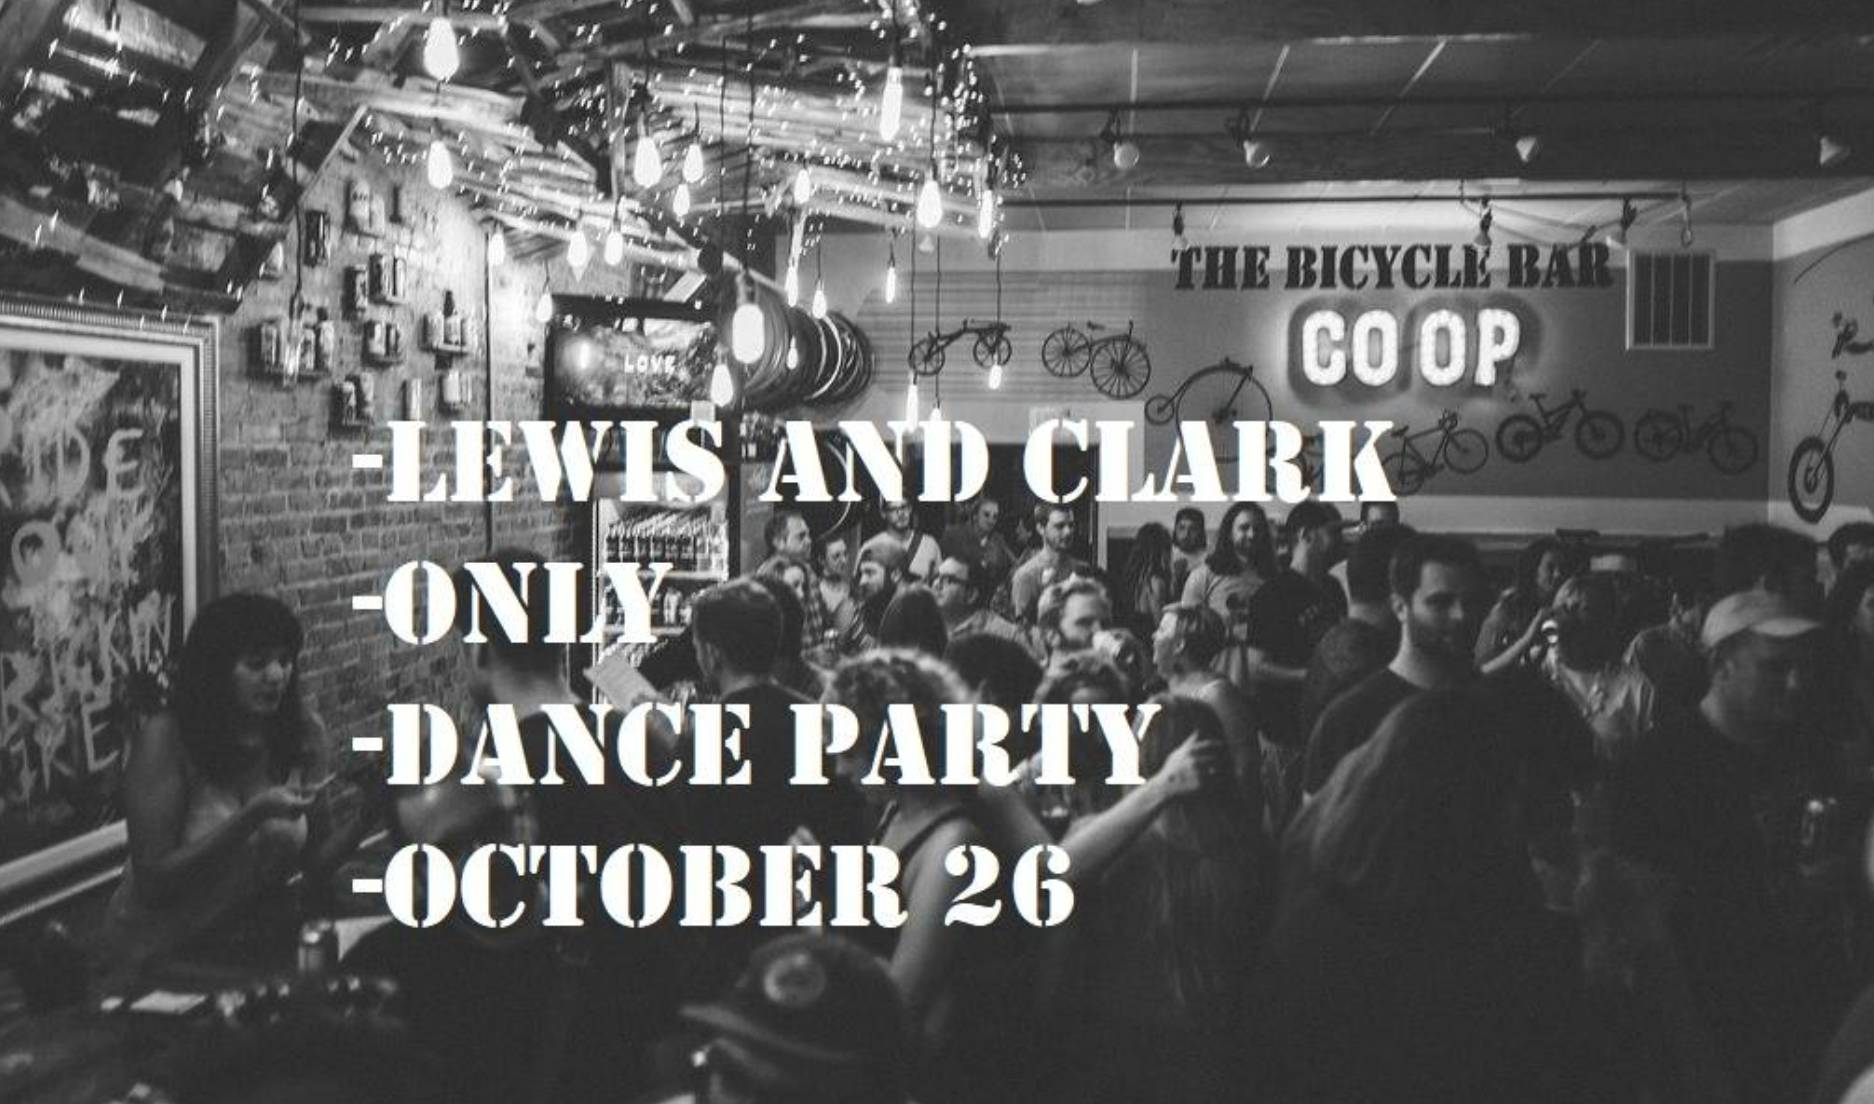 Lewis and Clark / Only / Lukang /Halloween Party